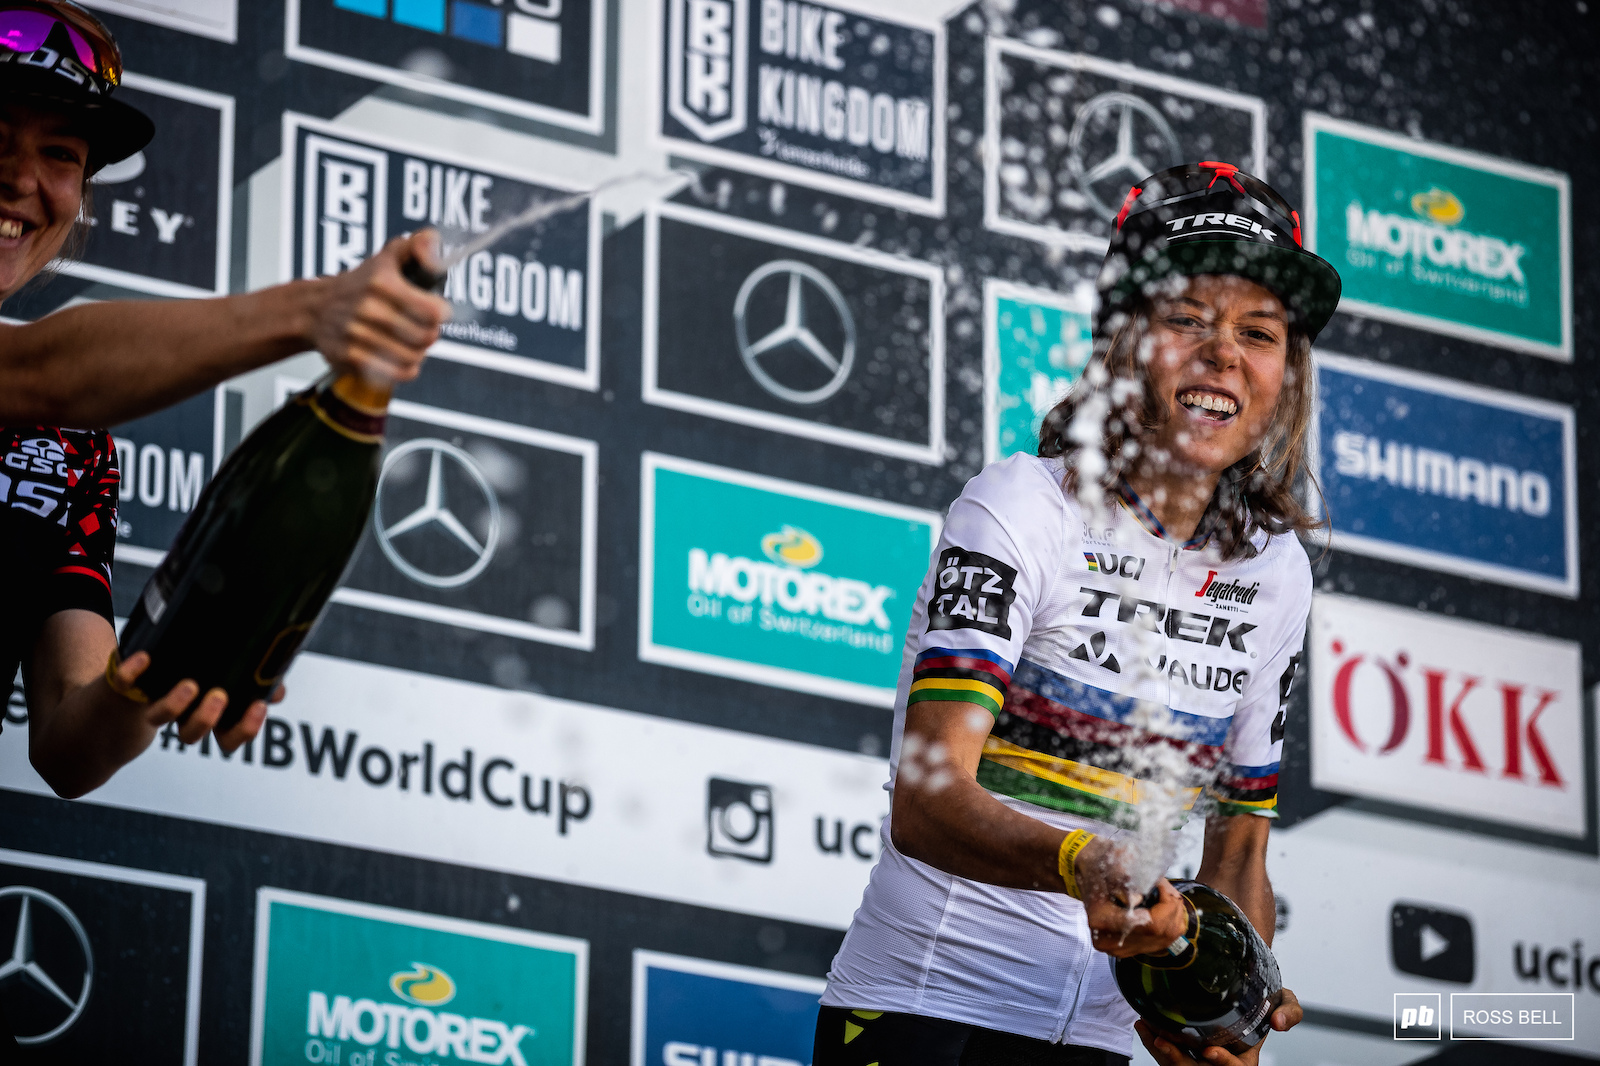 It s safe to say Mona Mitterwallner s champagne spraying skills have come on leaps and bounds this season.